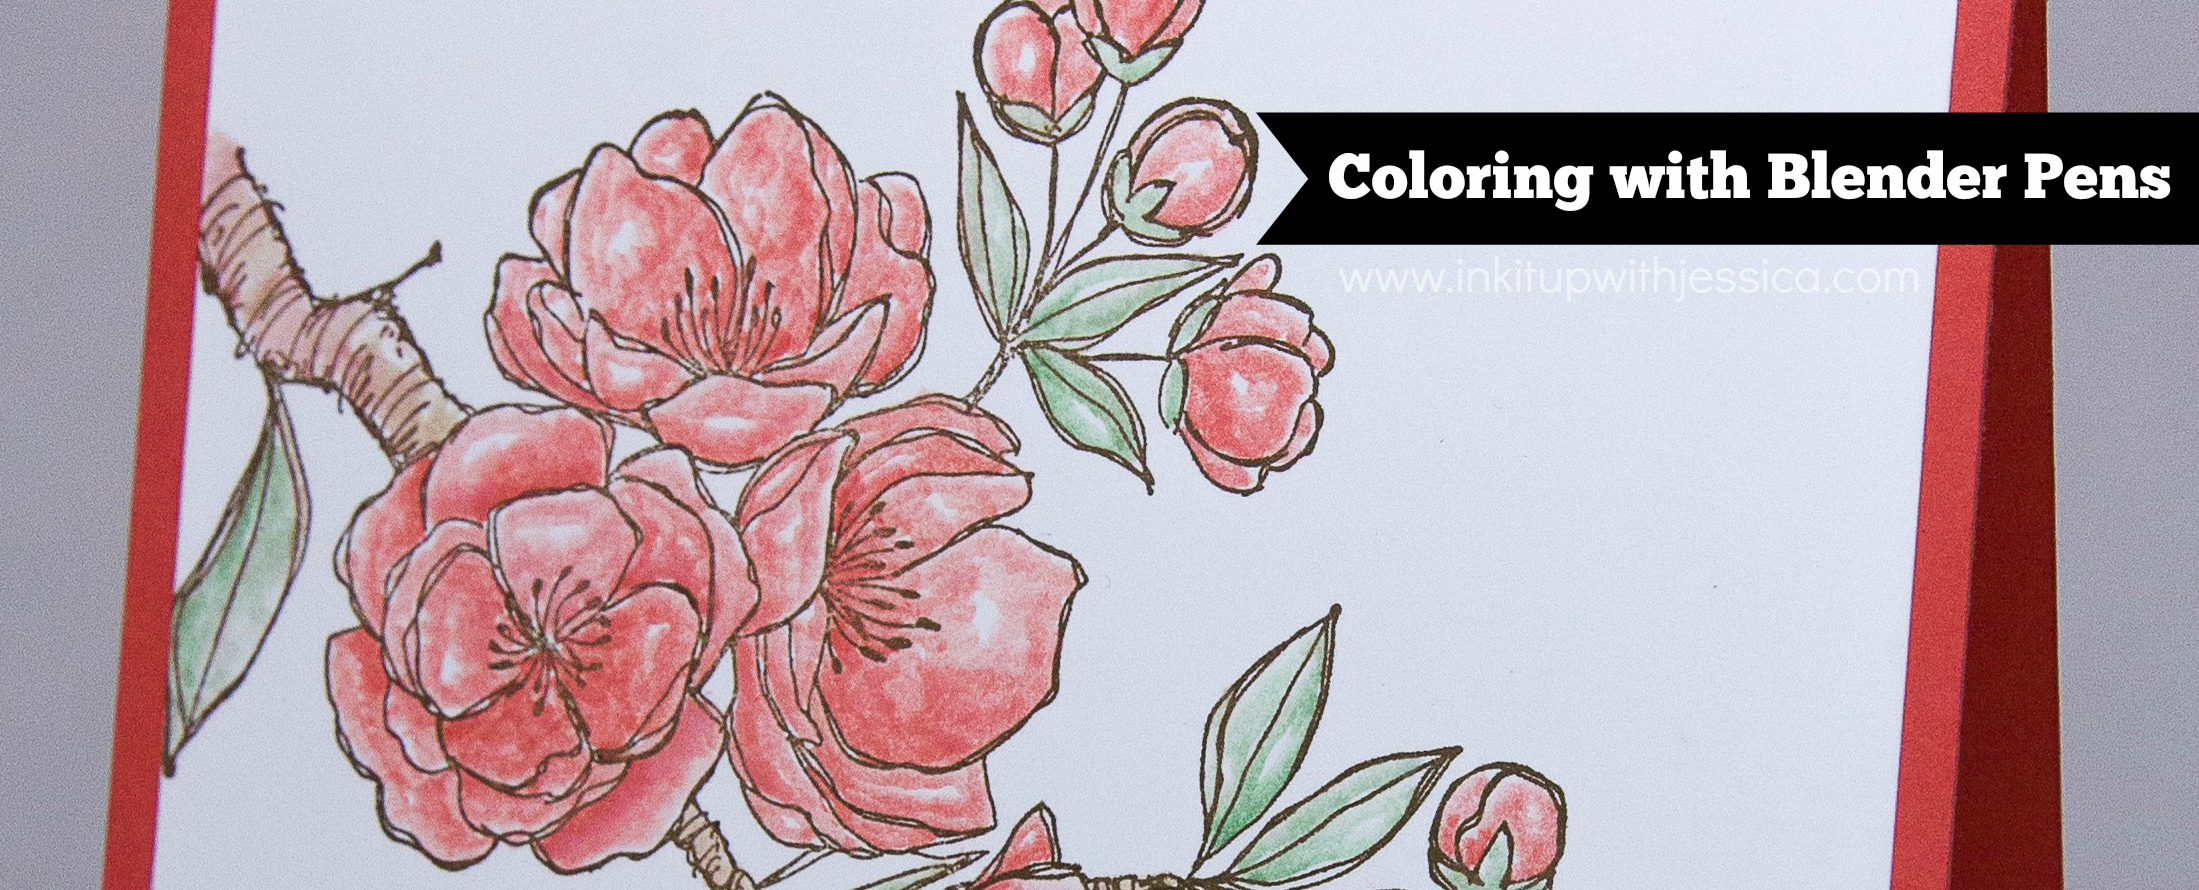 Coloring with Blender Pens